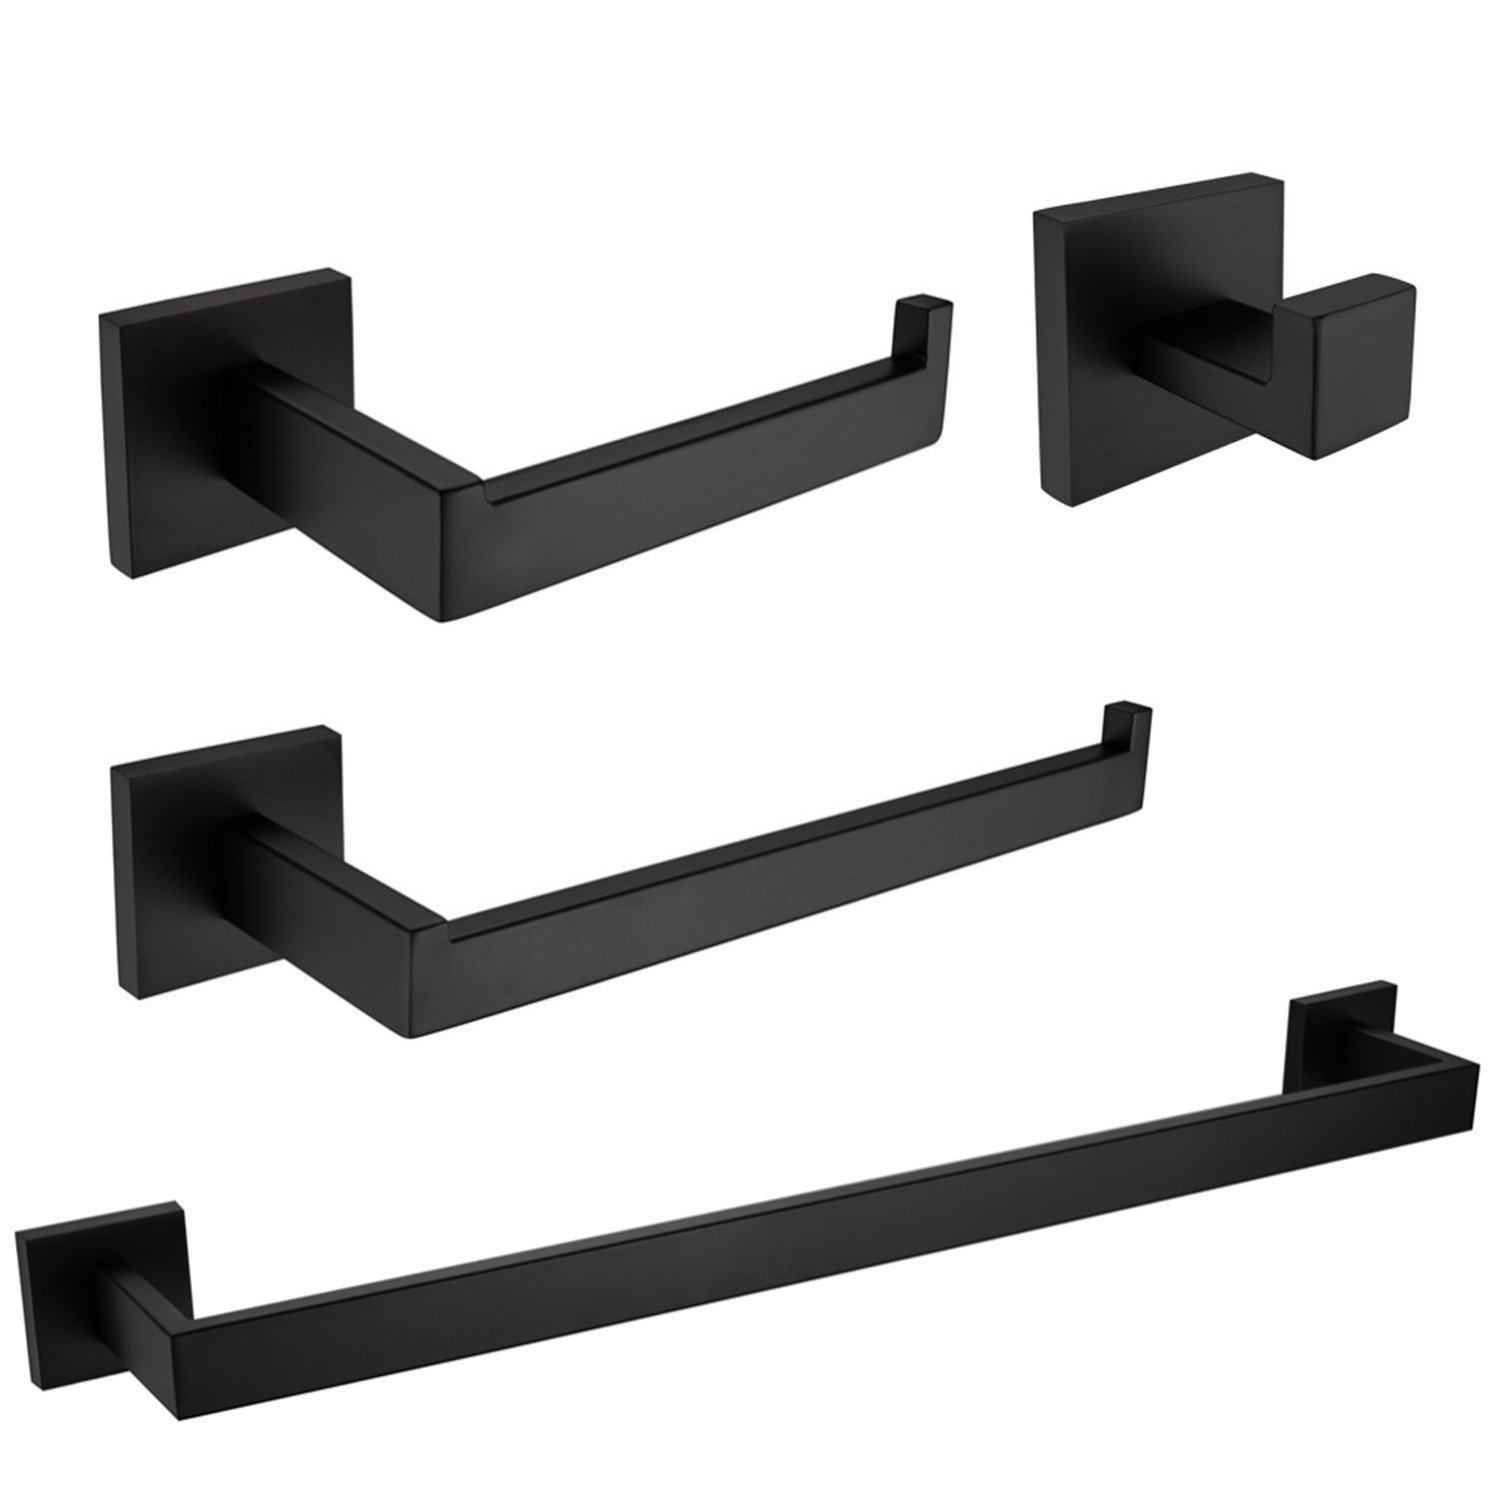 Bath Shower Set SUS 304 Stainless Steel Bathroom Hardware Accessories Sets Towel Bar Black Matte Finish Contemporary Style